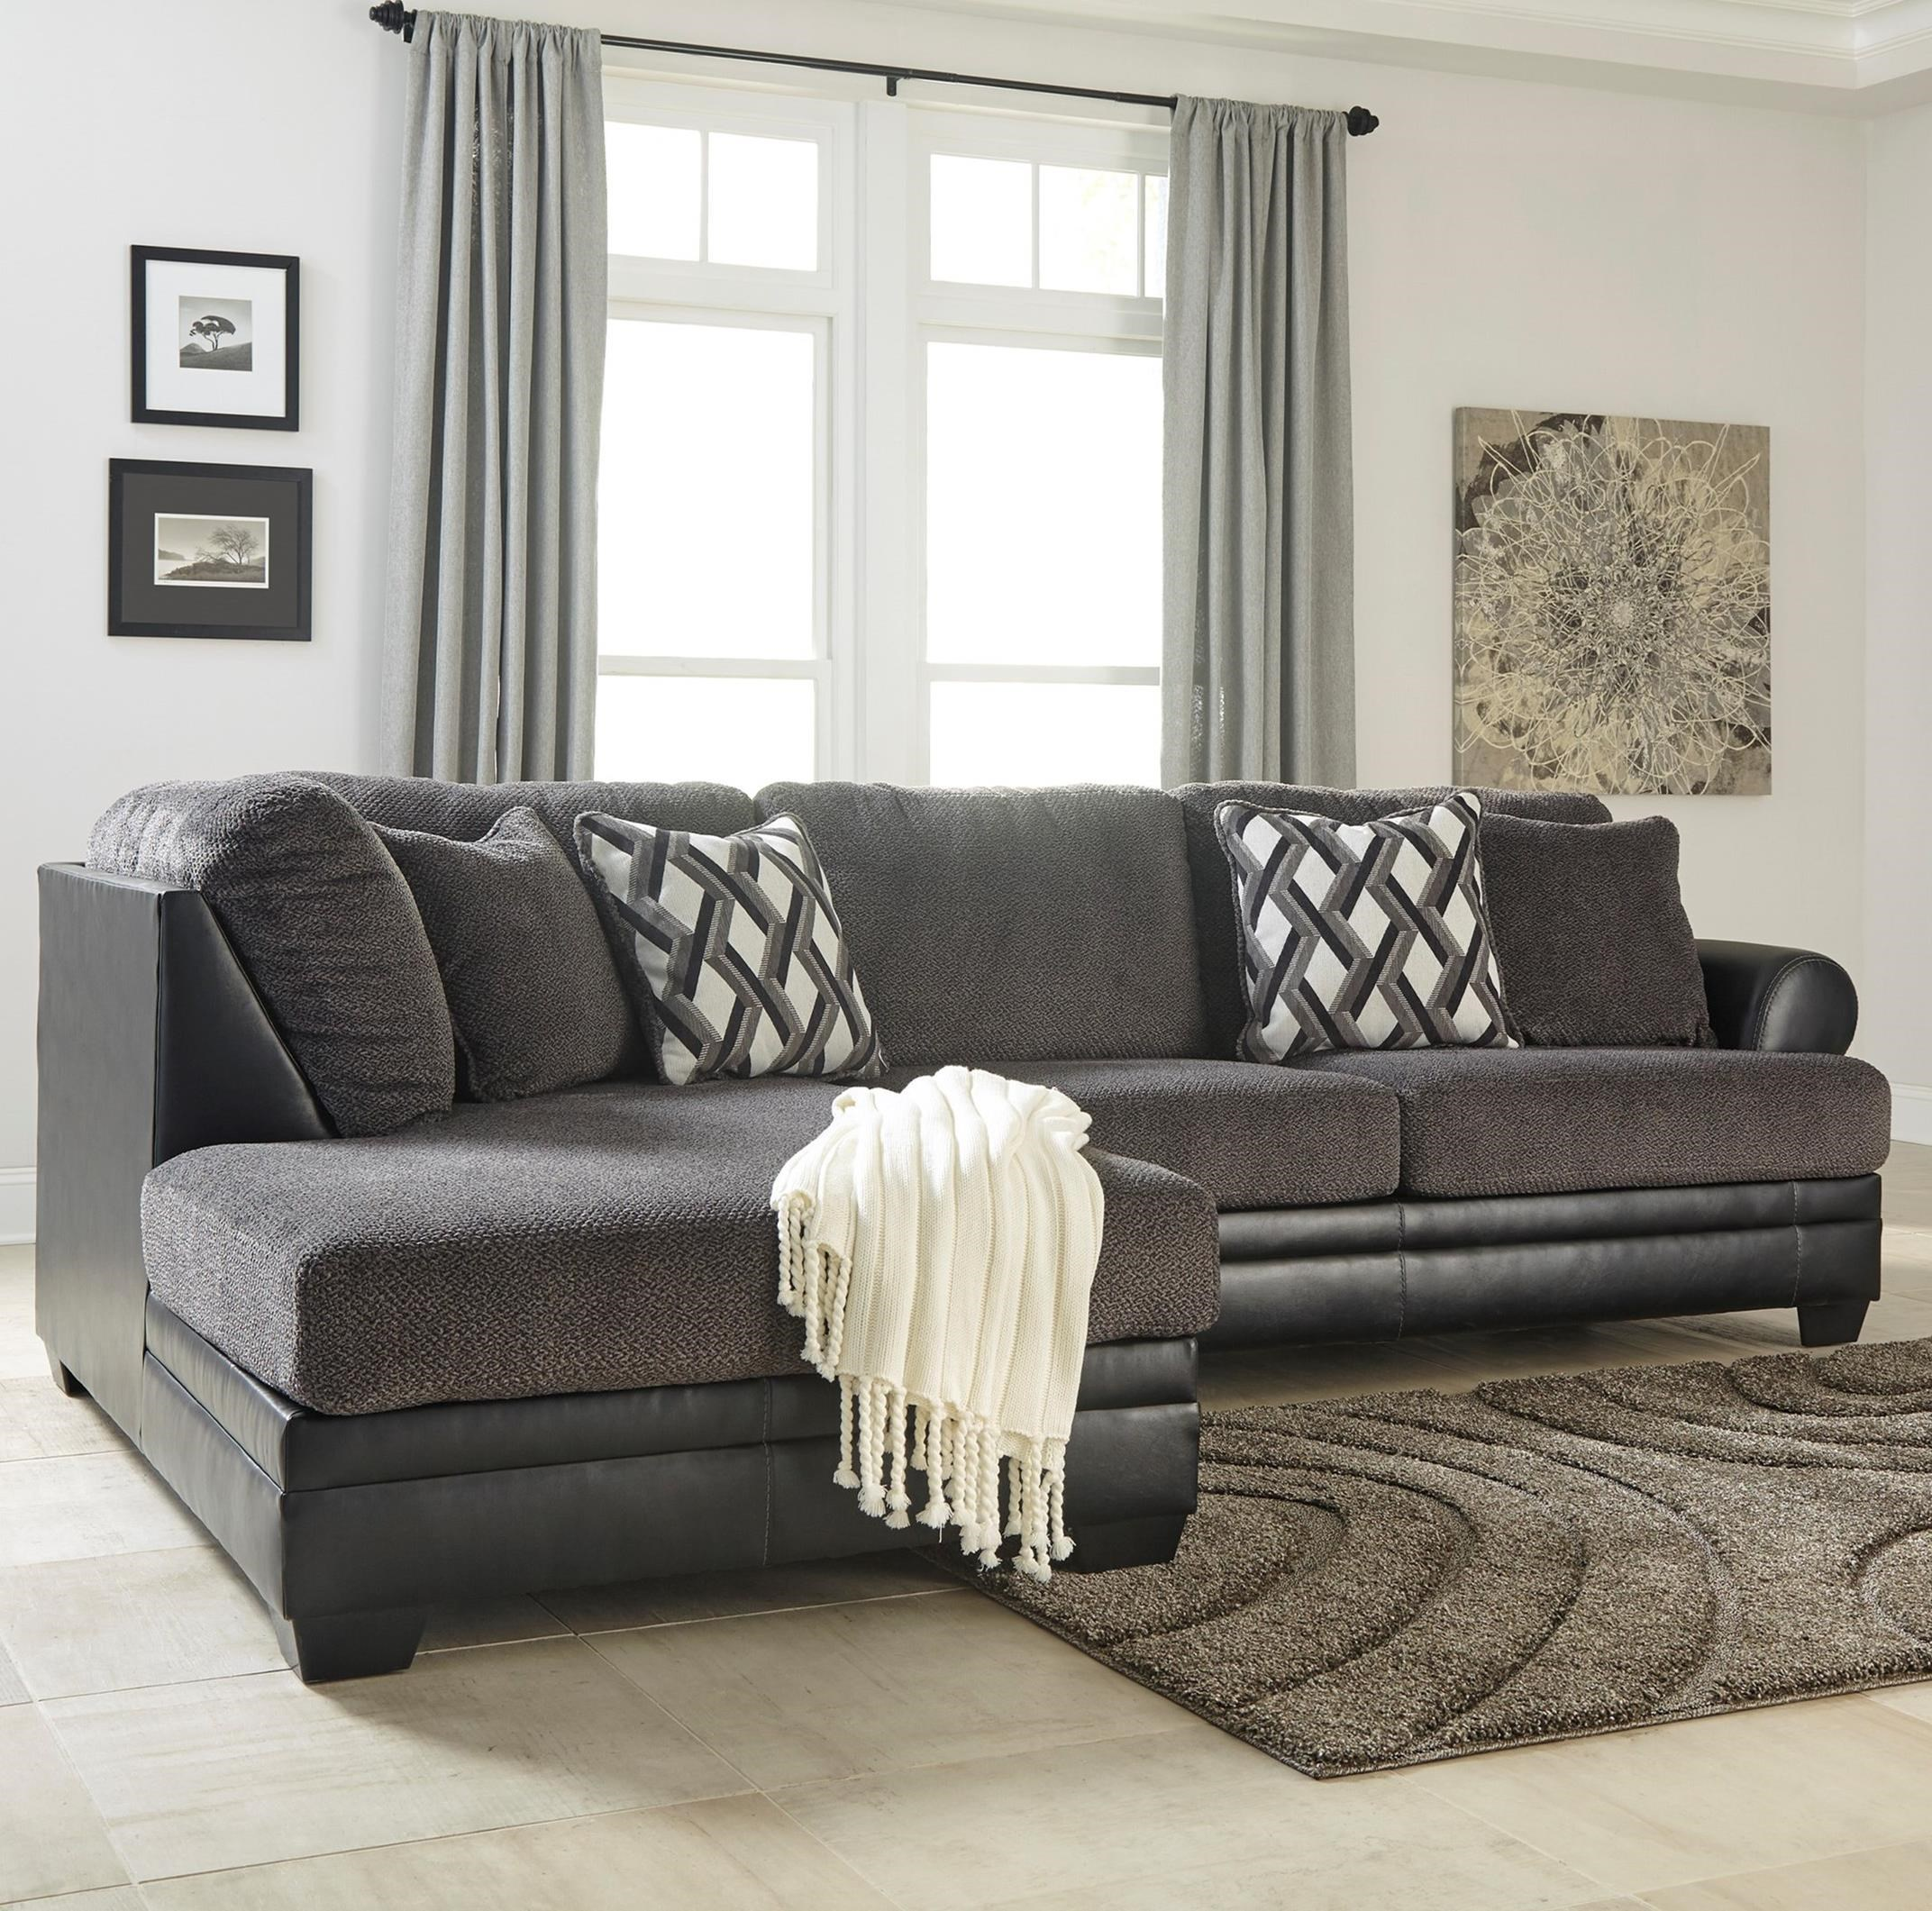 Kumasi 2-Piece Sectional with Left Chaise by Benchcraft at Zak's Warehouse Clearance Center